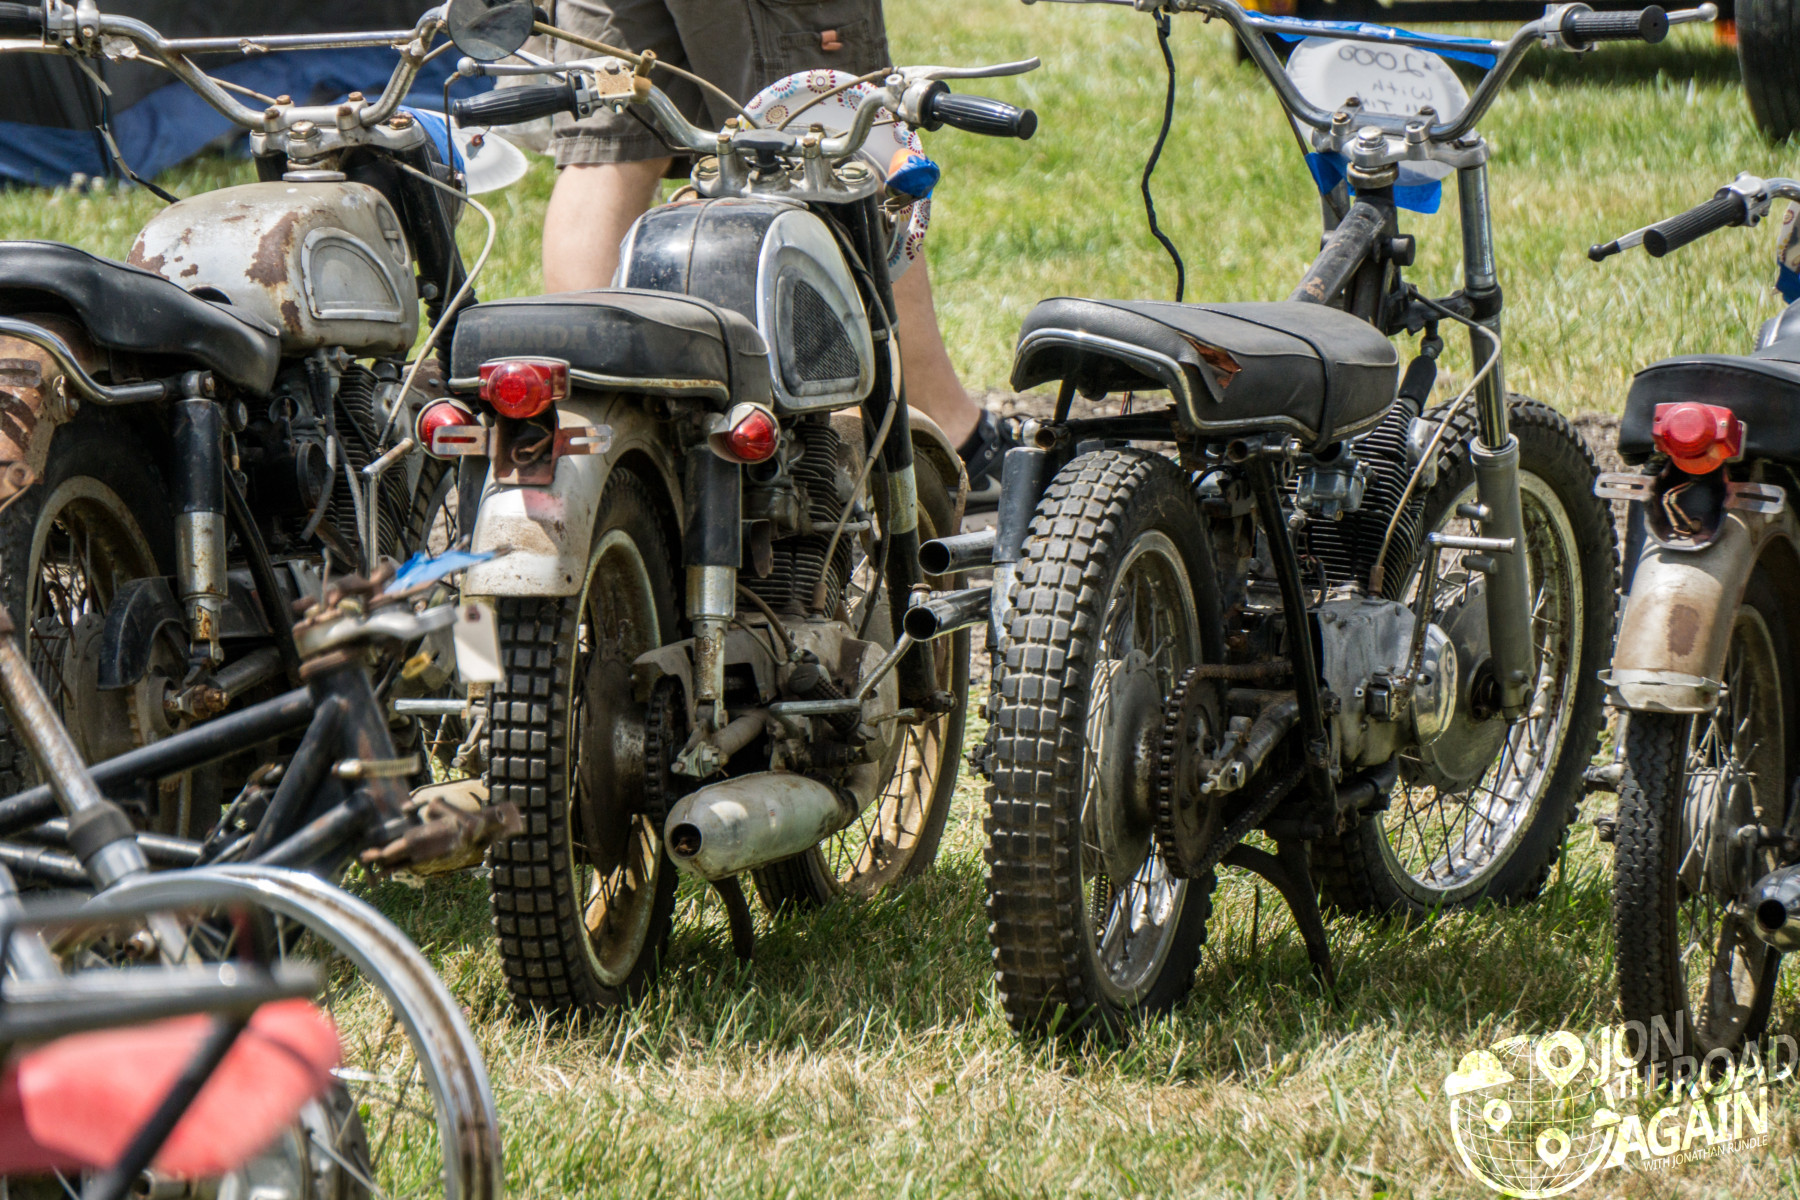 Motorcycle swap meet at AMA Vintage Motorcycle Days